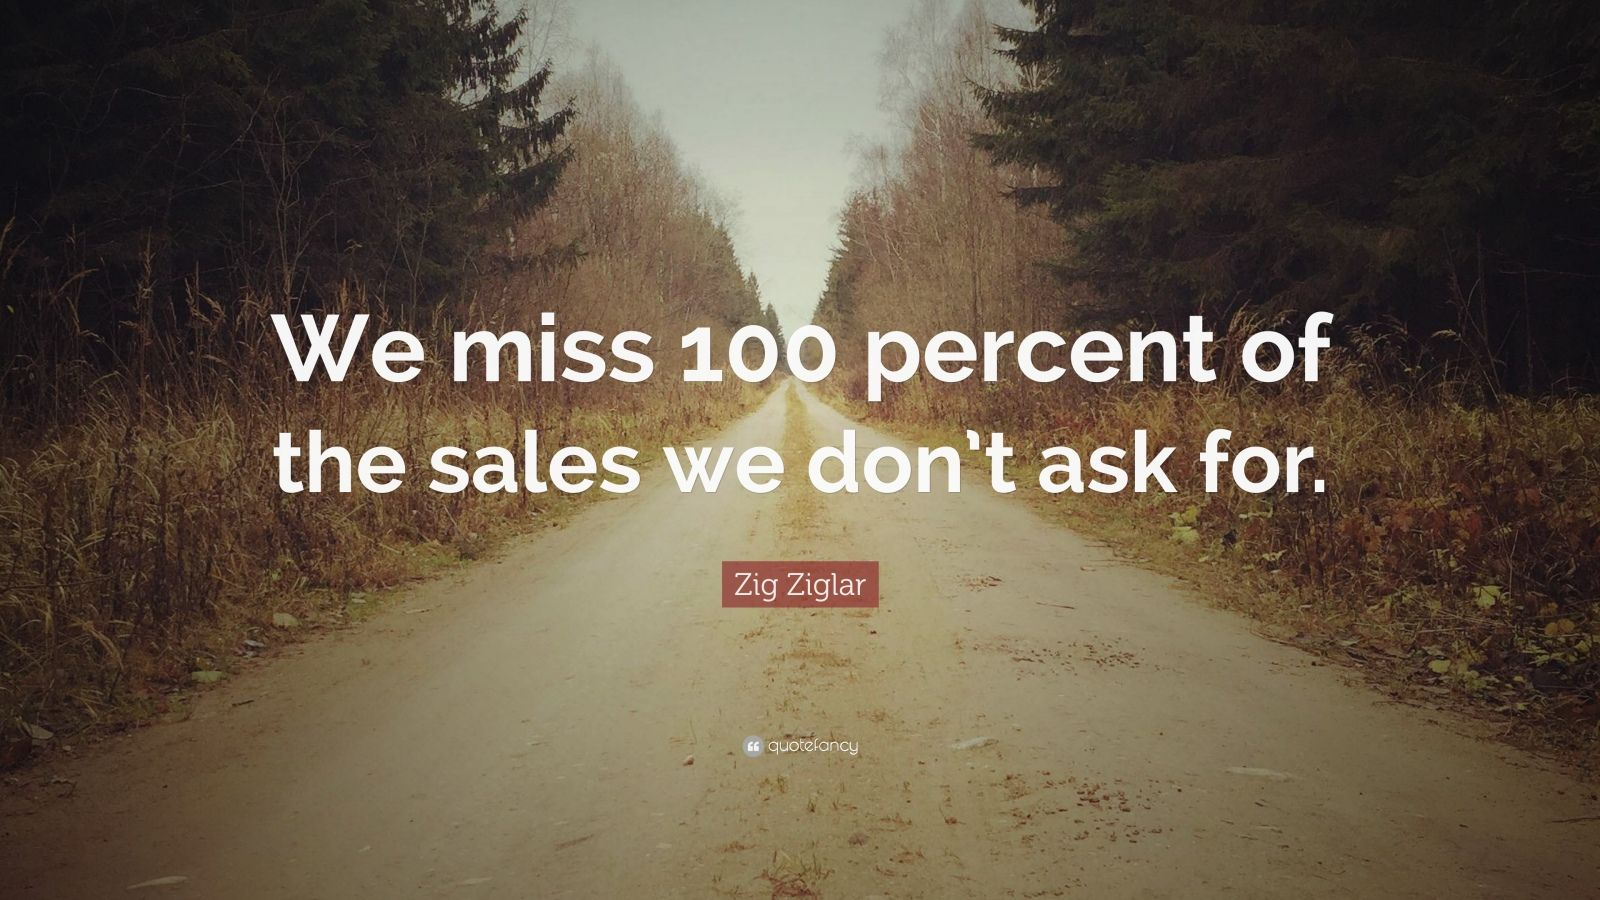 Business Success Quotes Wallpaper Zig Ziglar Quote We Miss 100 Percent Of The Sales We Don